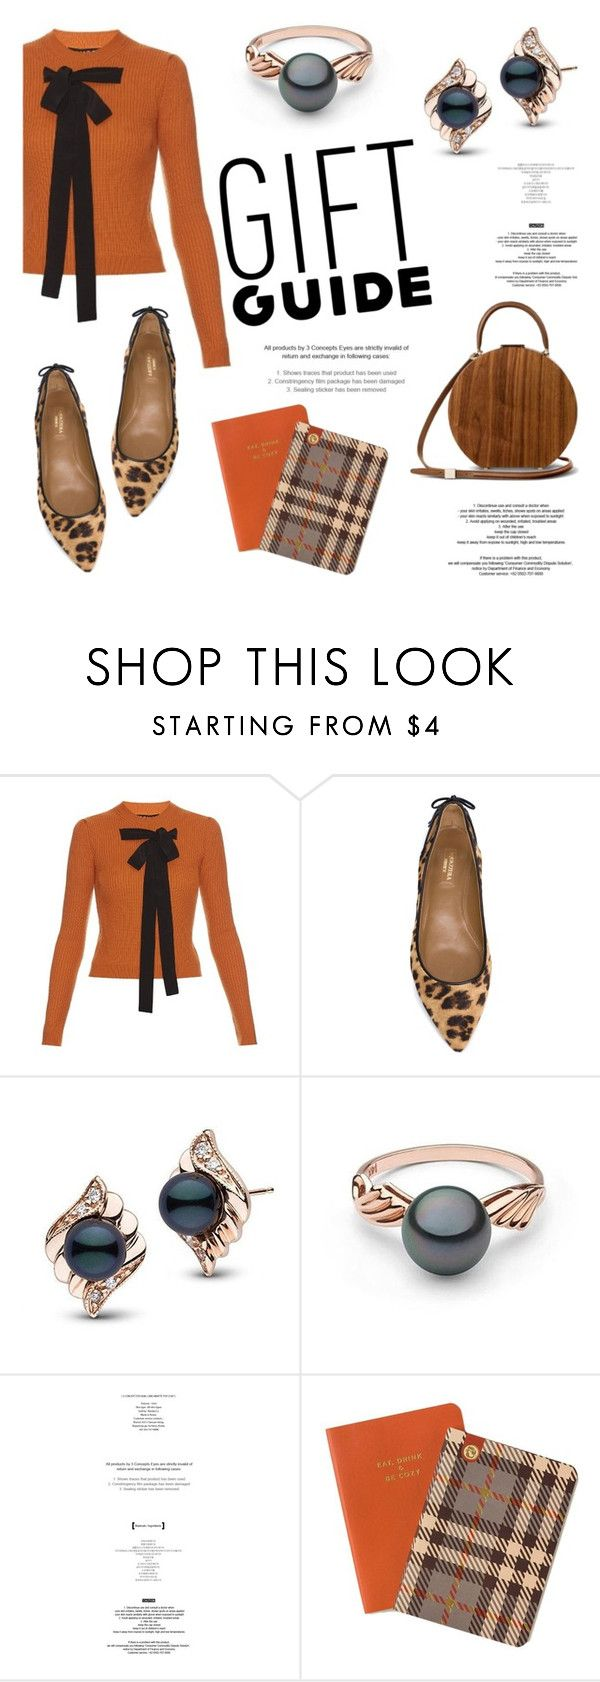 """""""Gift Guide: Besties"""" by pearlparadise ❤ liked on Polyvore featuring Rochas, Aquazzura, StyleNanda, Spartina 449, giftguide, besties, contestentry, pearljewelry and pearlparadise"""